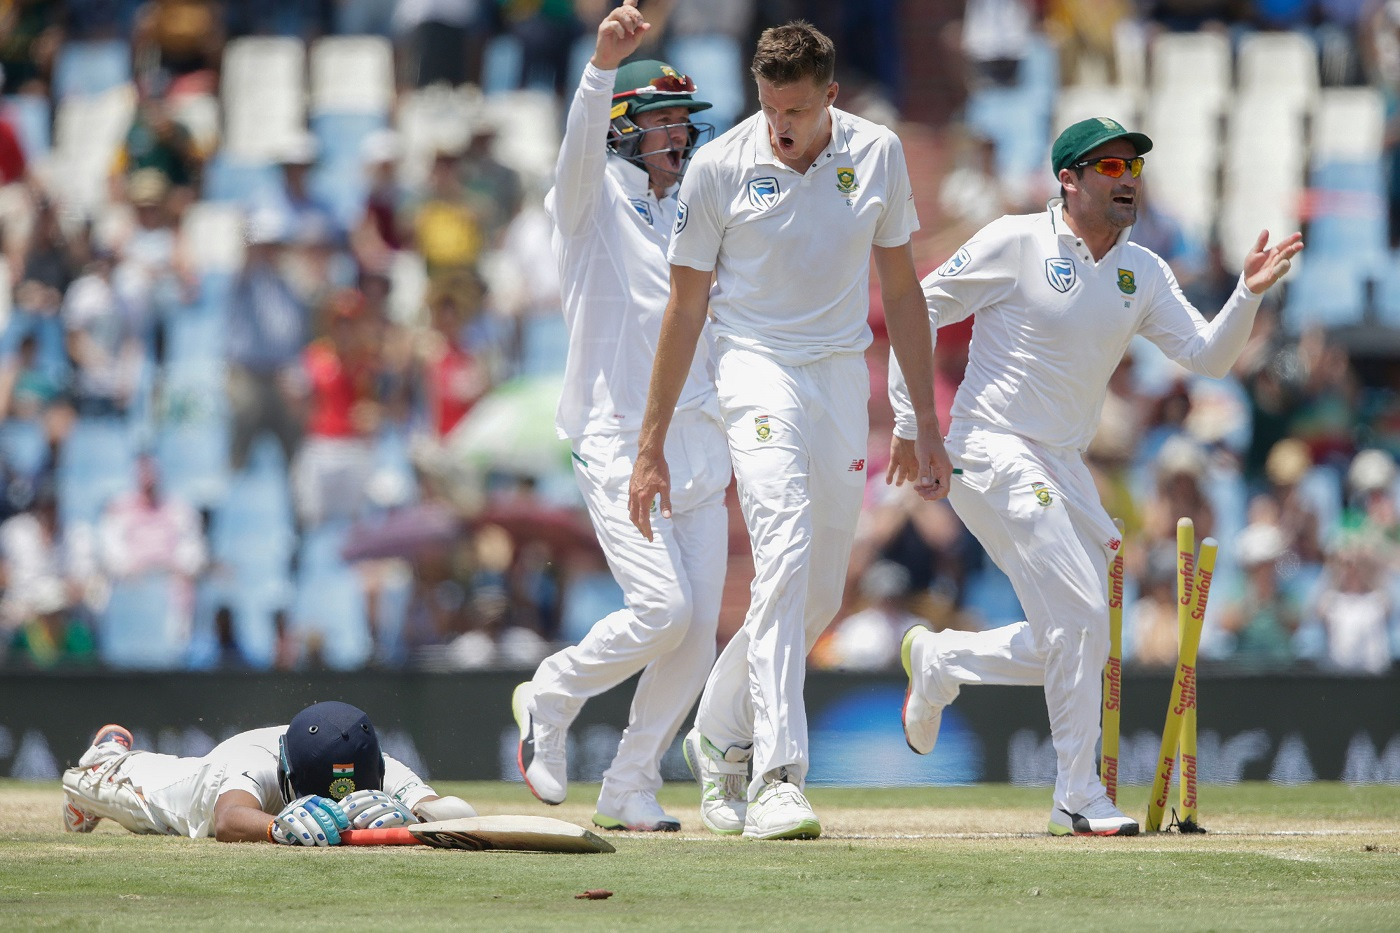 India vs South Africa 2nd Test Day 5 Highlights